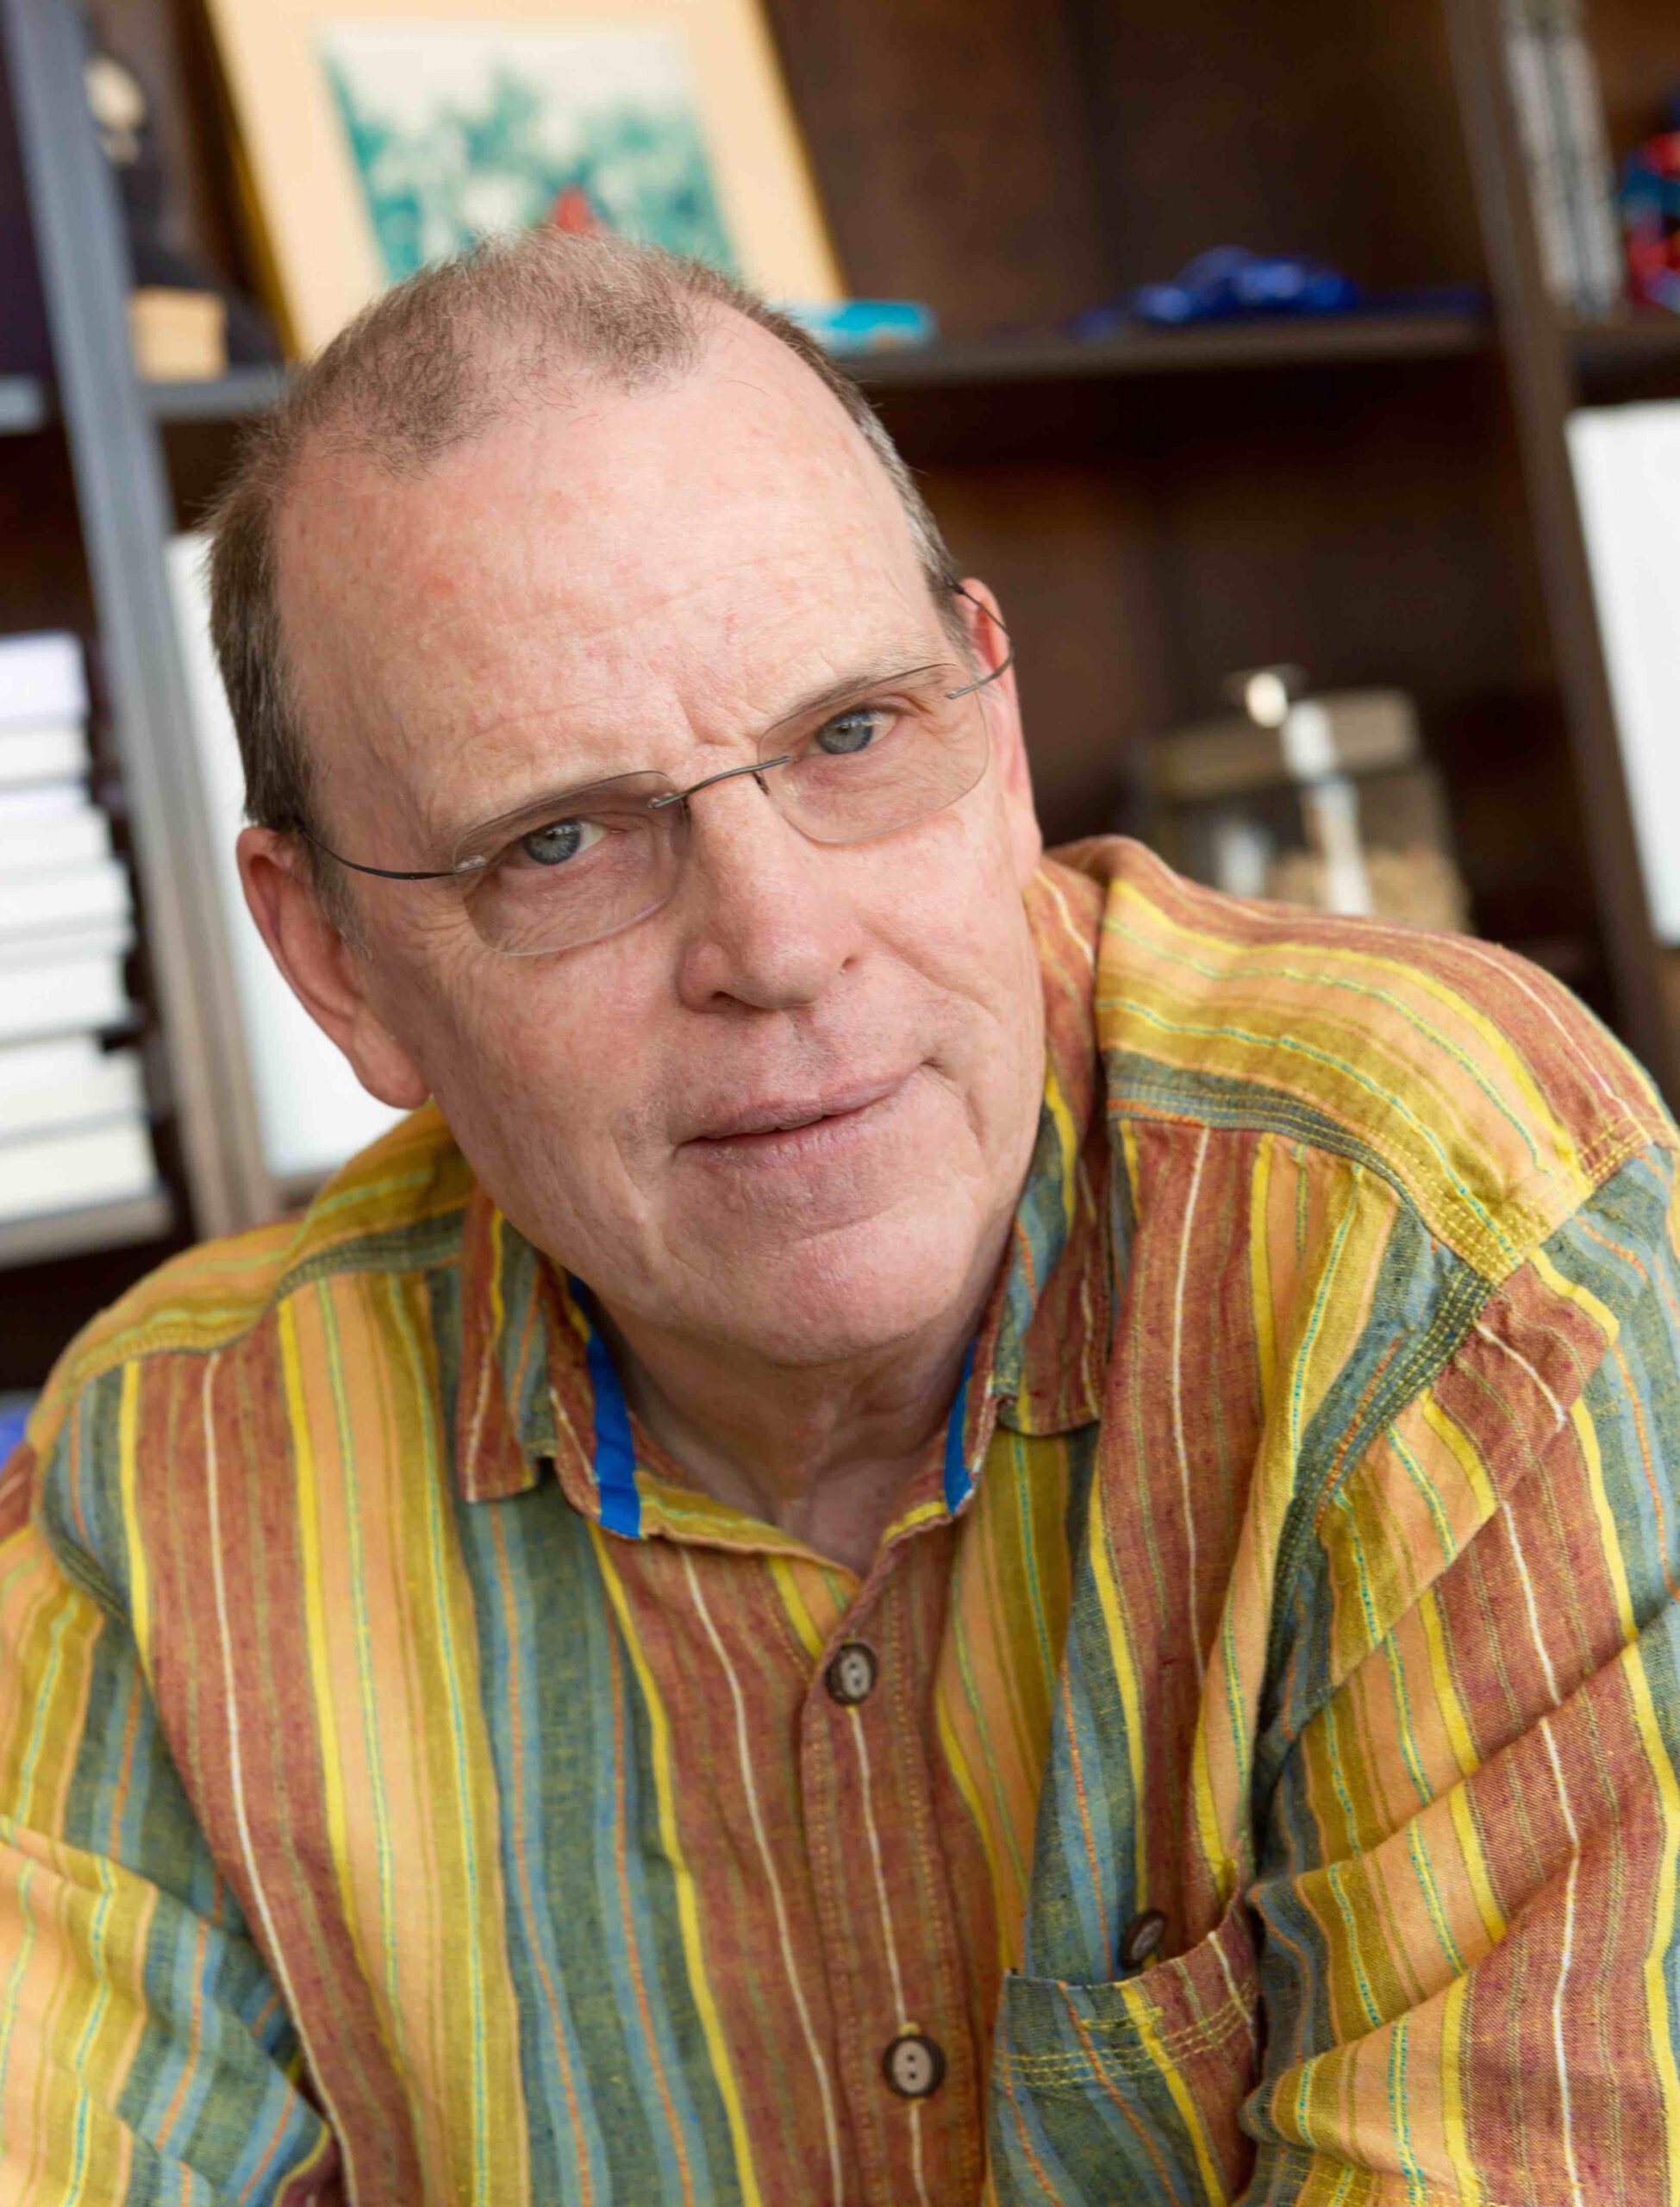 Dr. David Randall poses in front of a bookshelf wearing a colorful button-up and square glasses